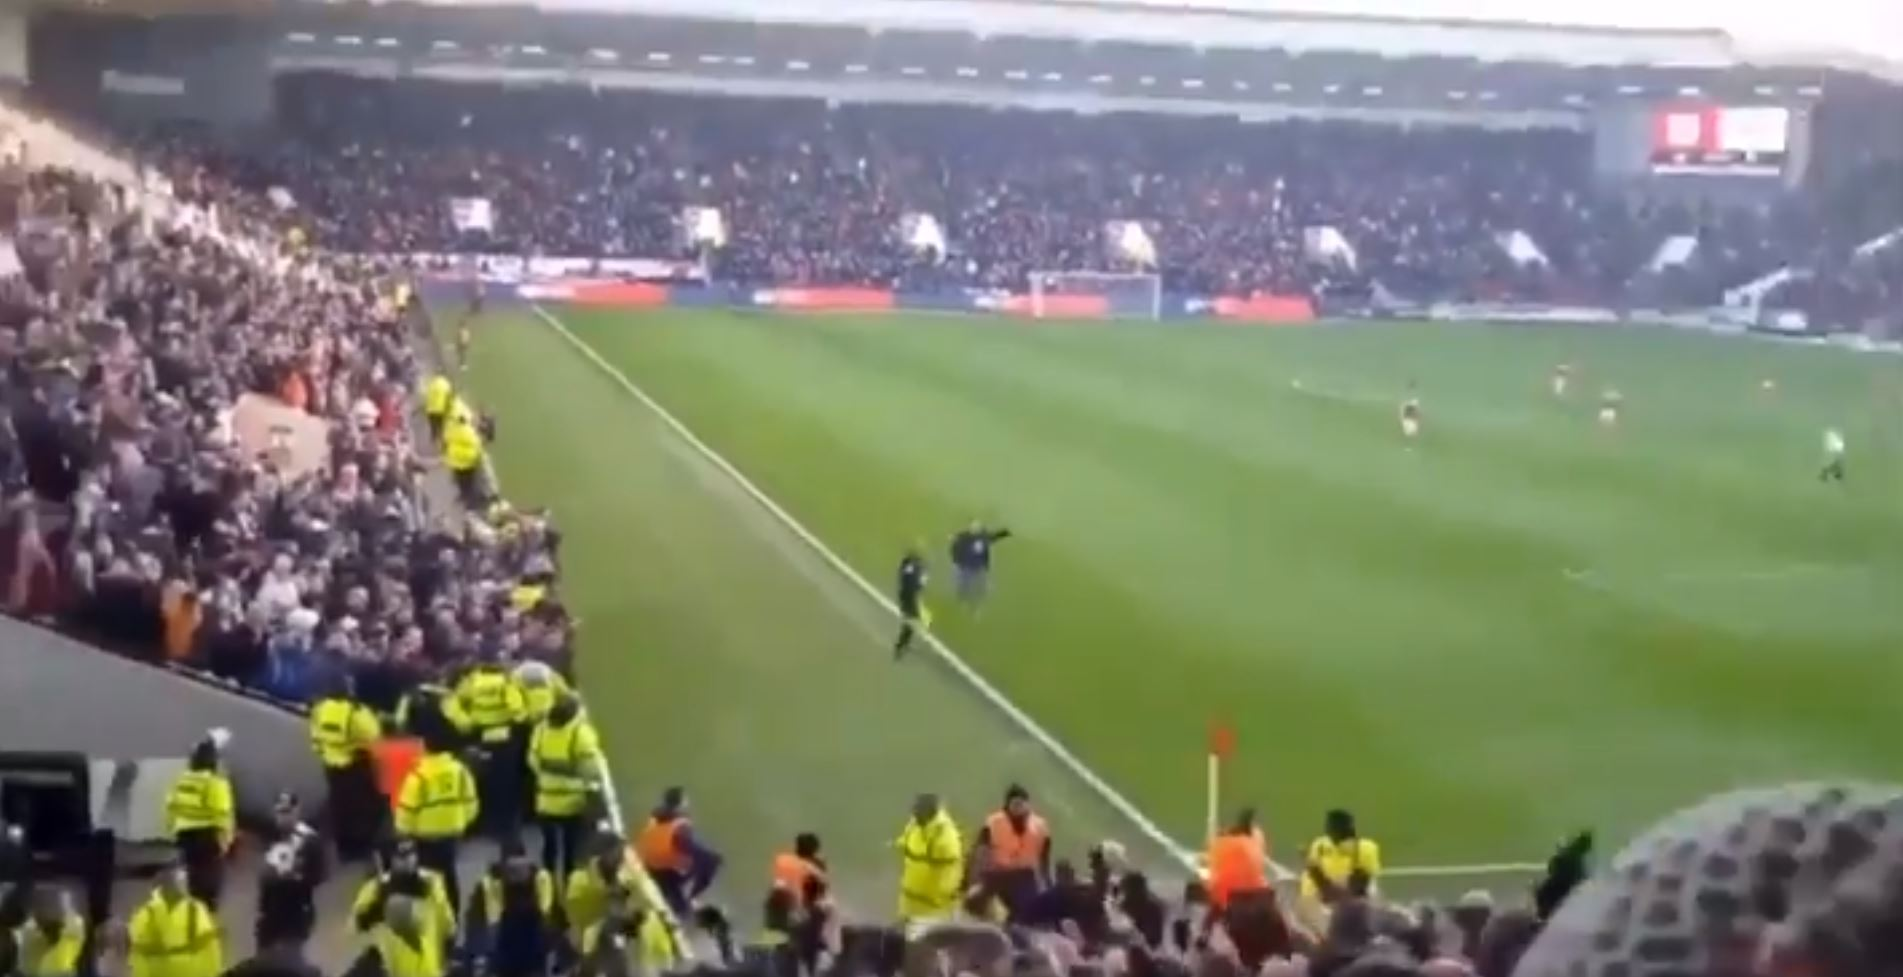 WATCH: Bristol City Fan Runs Length Of The Pitch To Celebrate Goal In Front Of Swansea Fans As It's Ruled Offside